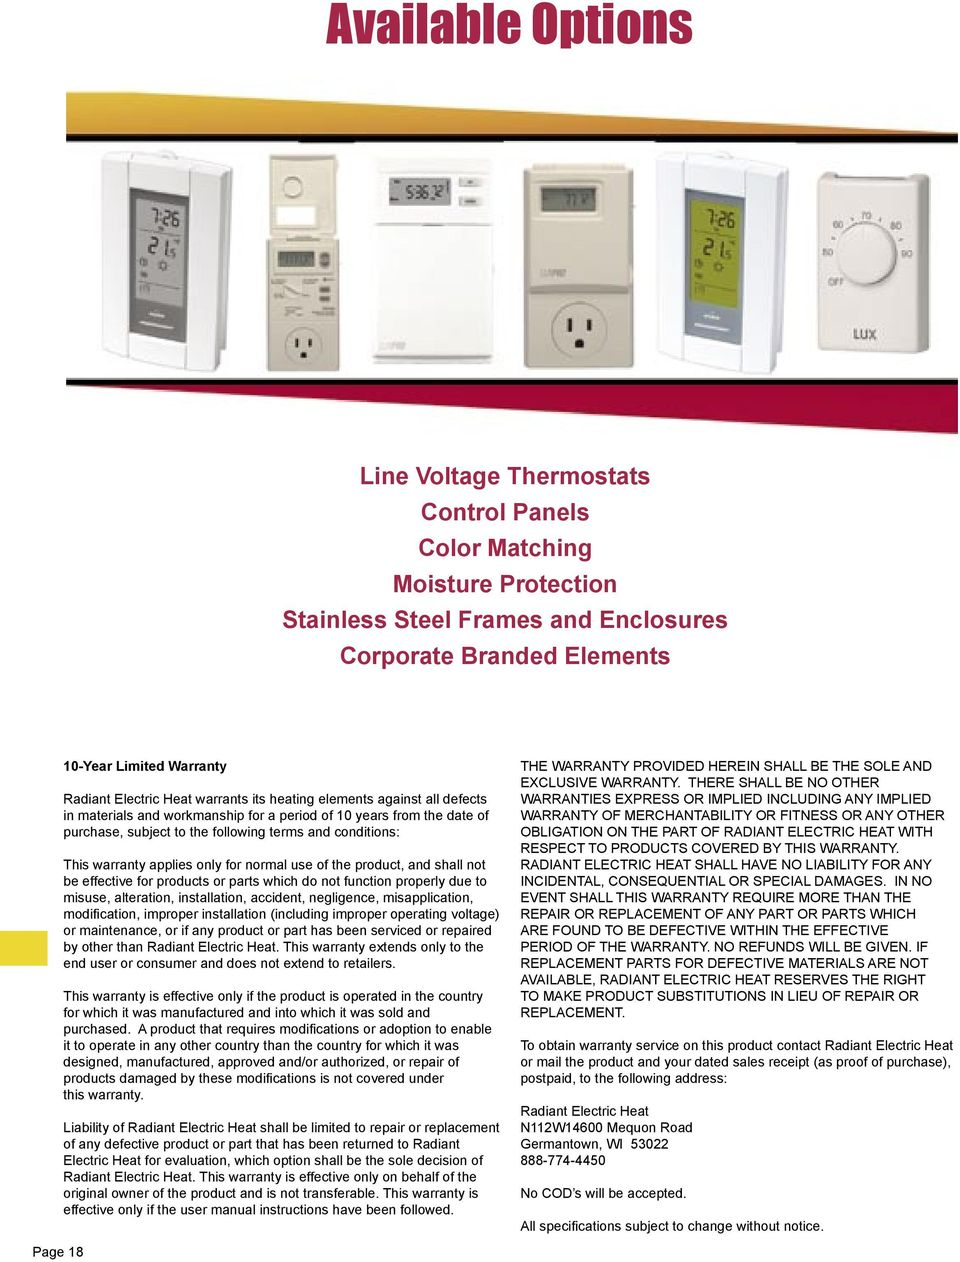 Heater 94605 User Guide On Basic Electrical Wiring Diagrams Instructions Infrared Radiant Heaters And Controls N112 W14600 Mequon Road Fan